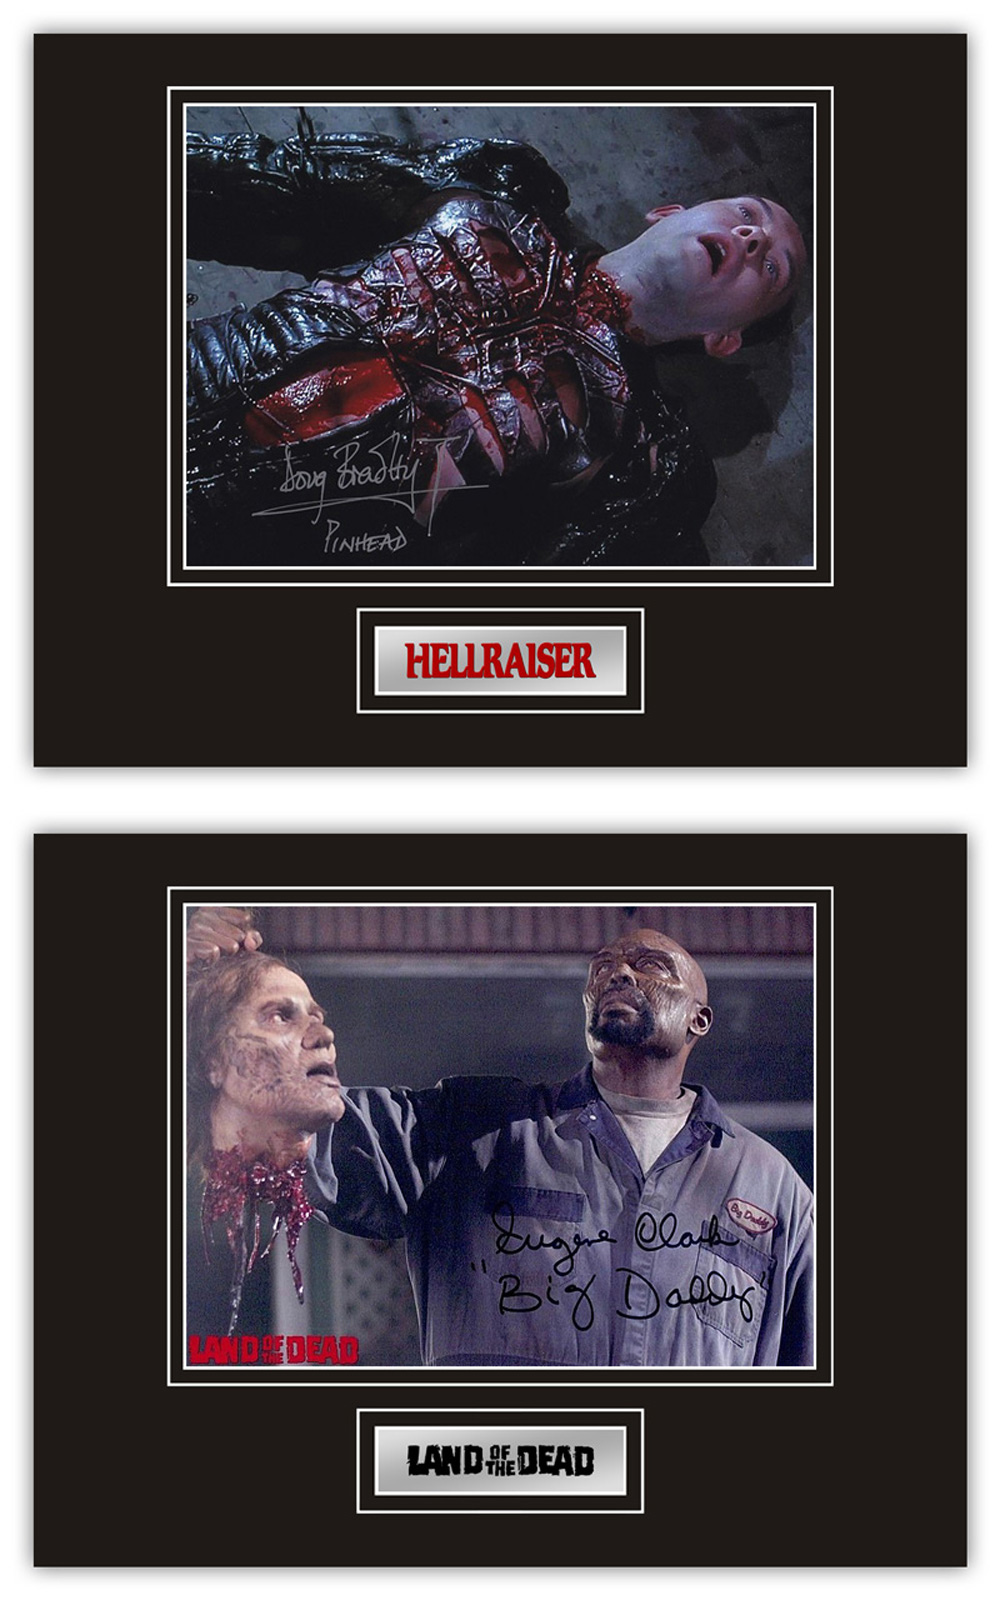 Set of 2 Stunning Displays! Horror hand signed professionally mounted displays. This beautiful set